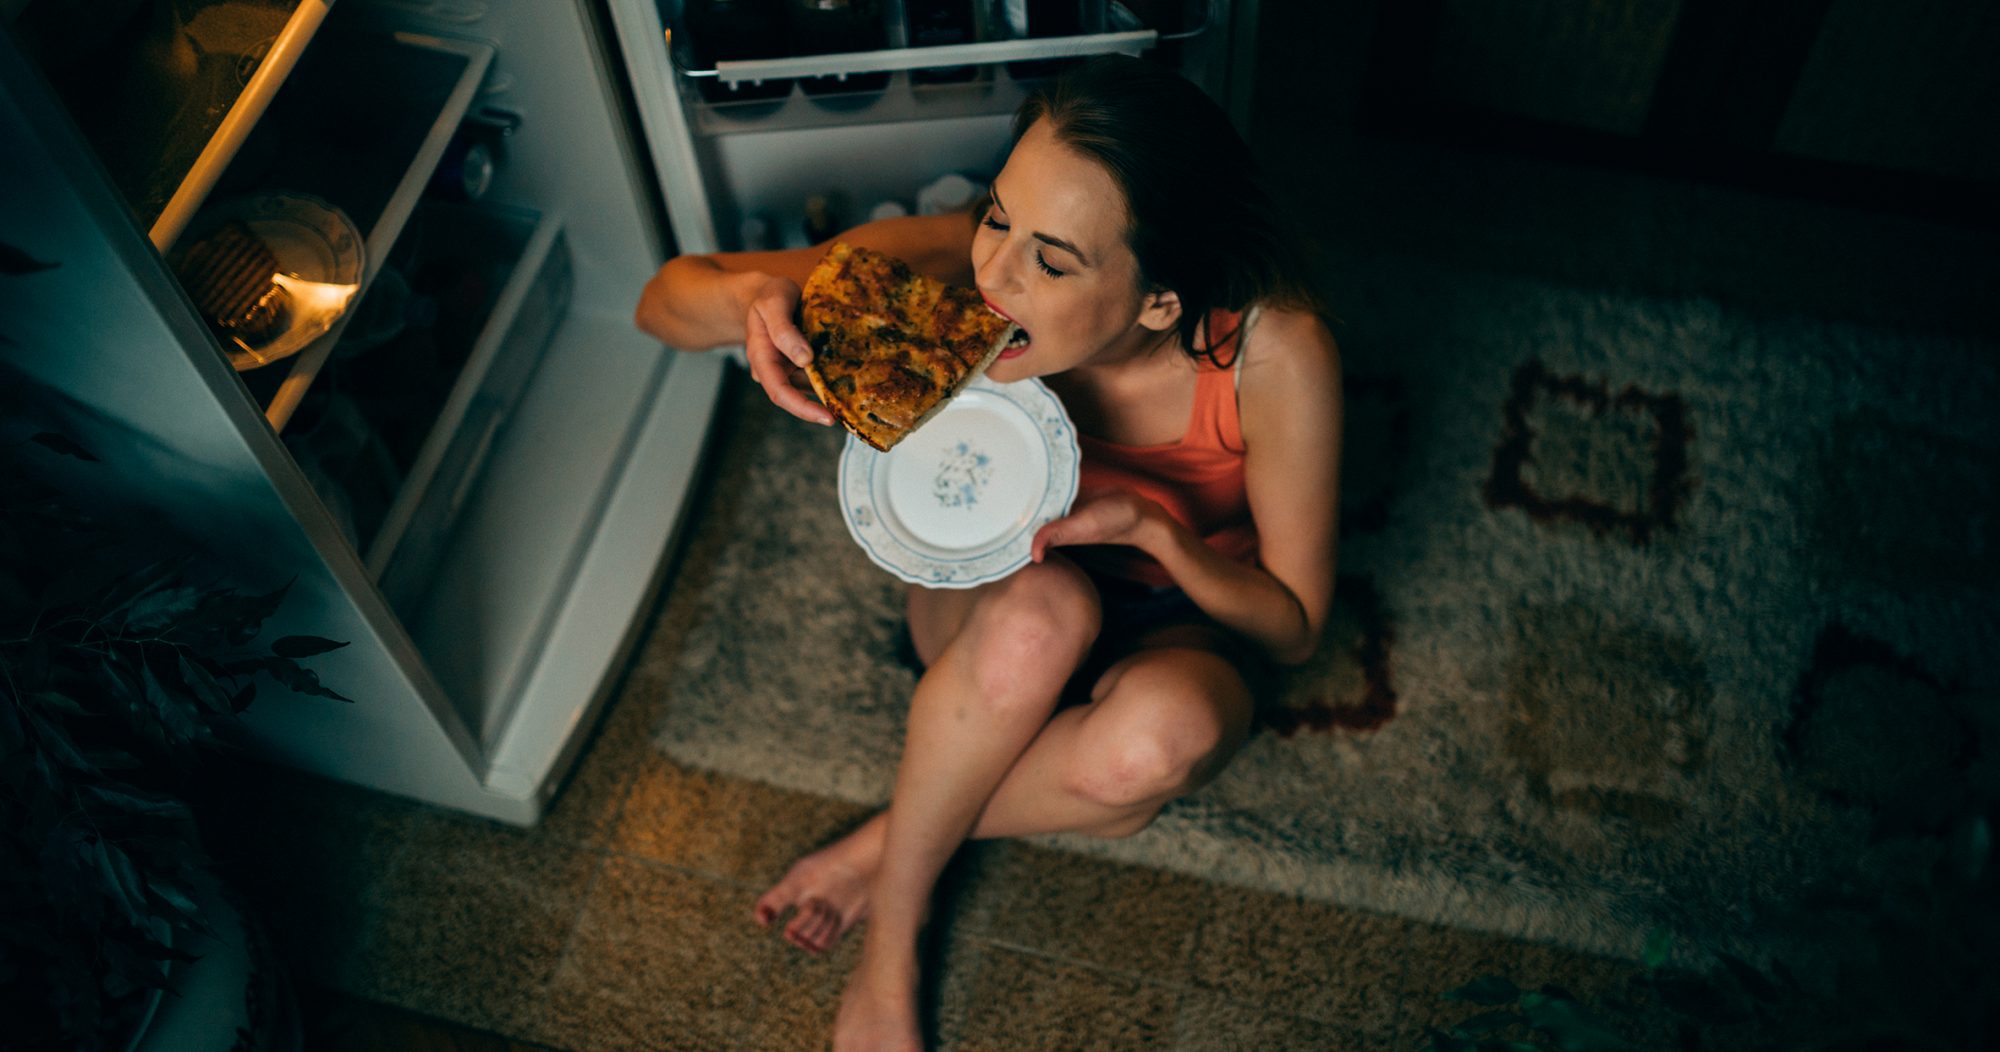 An example of a binge eating episode